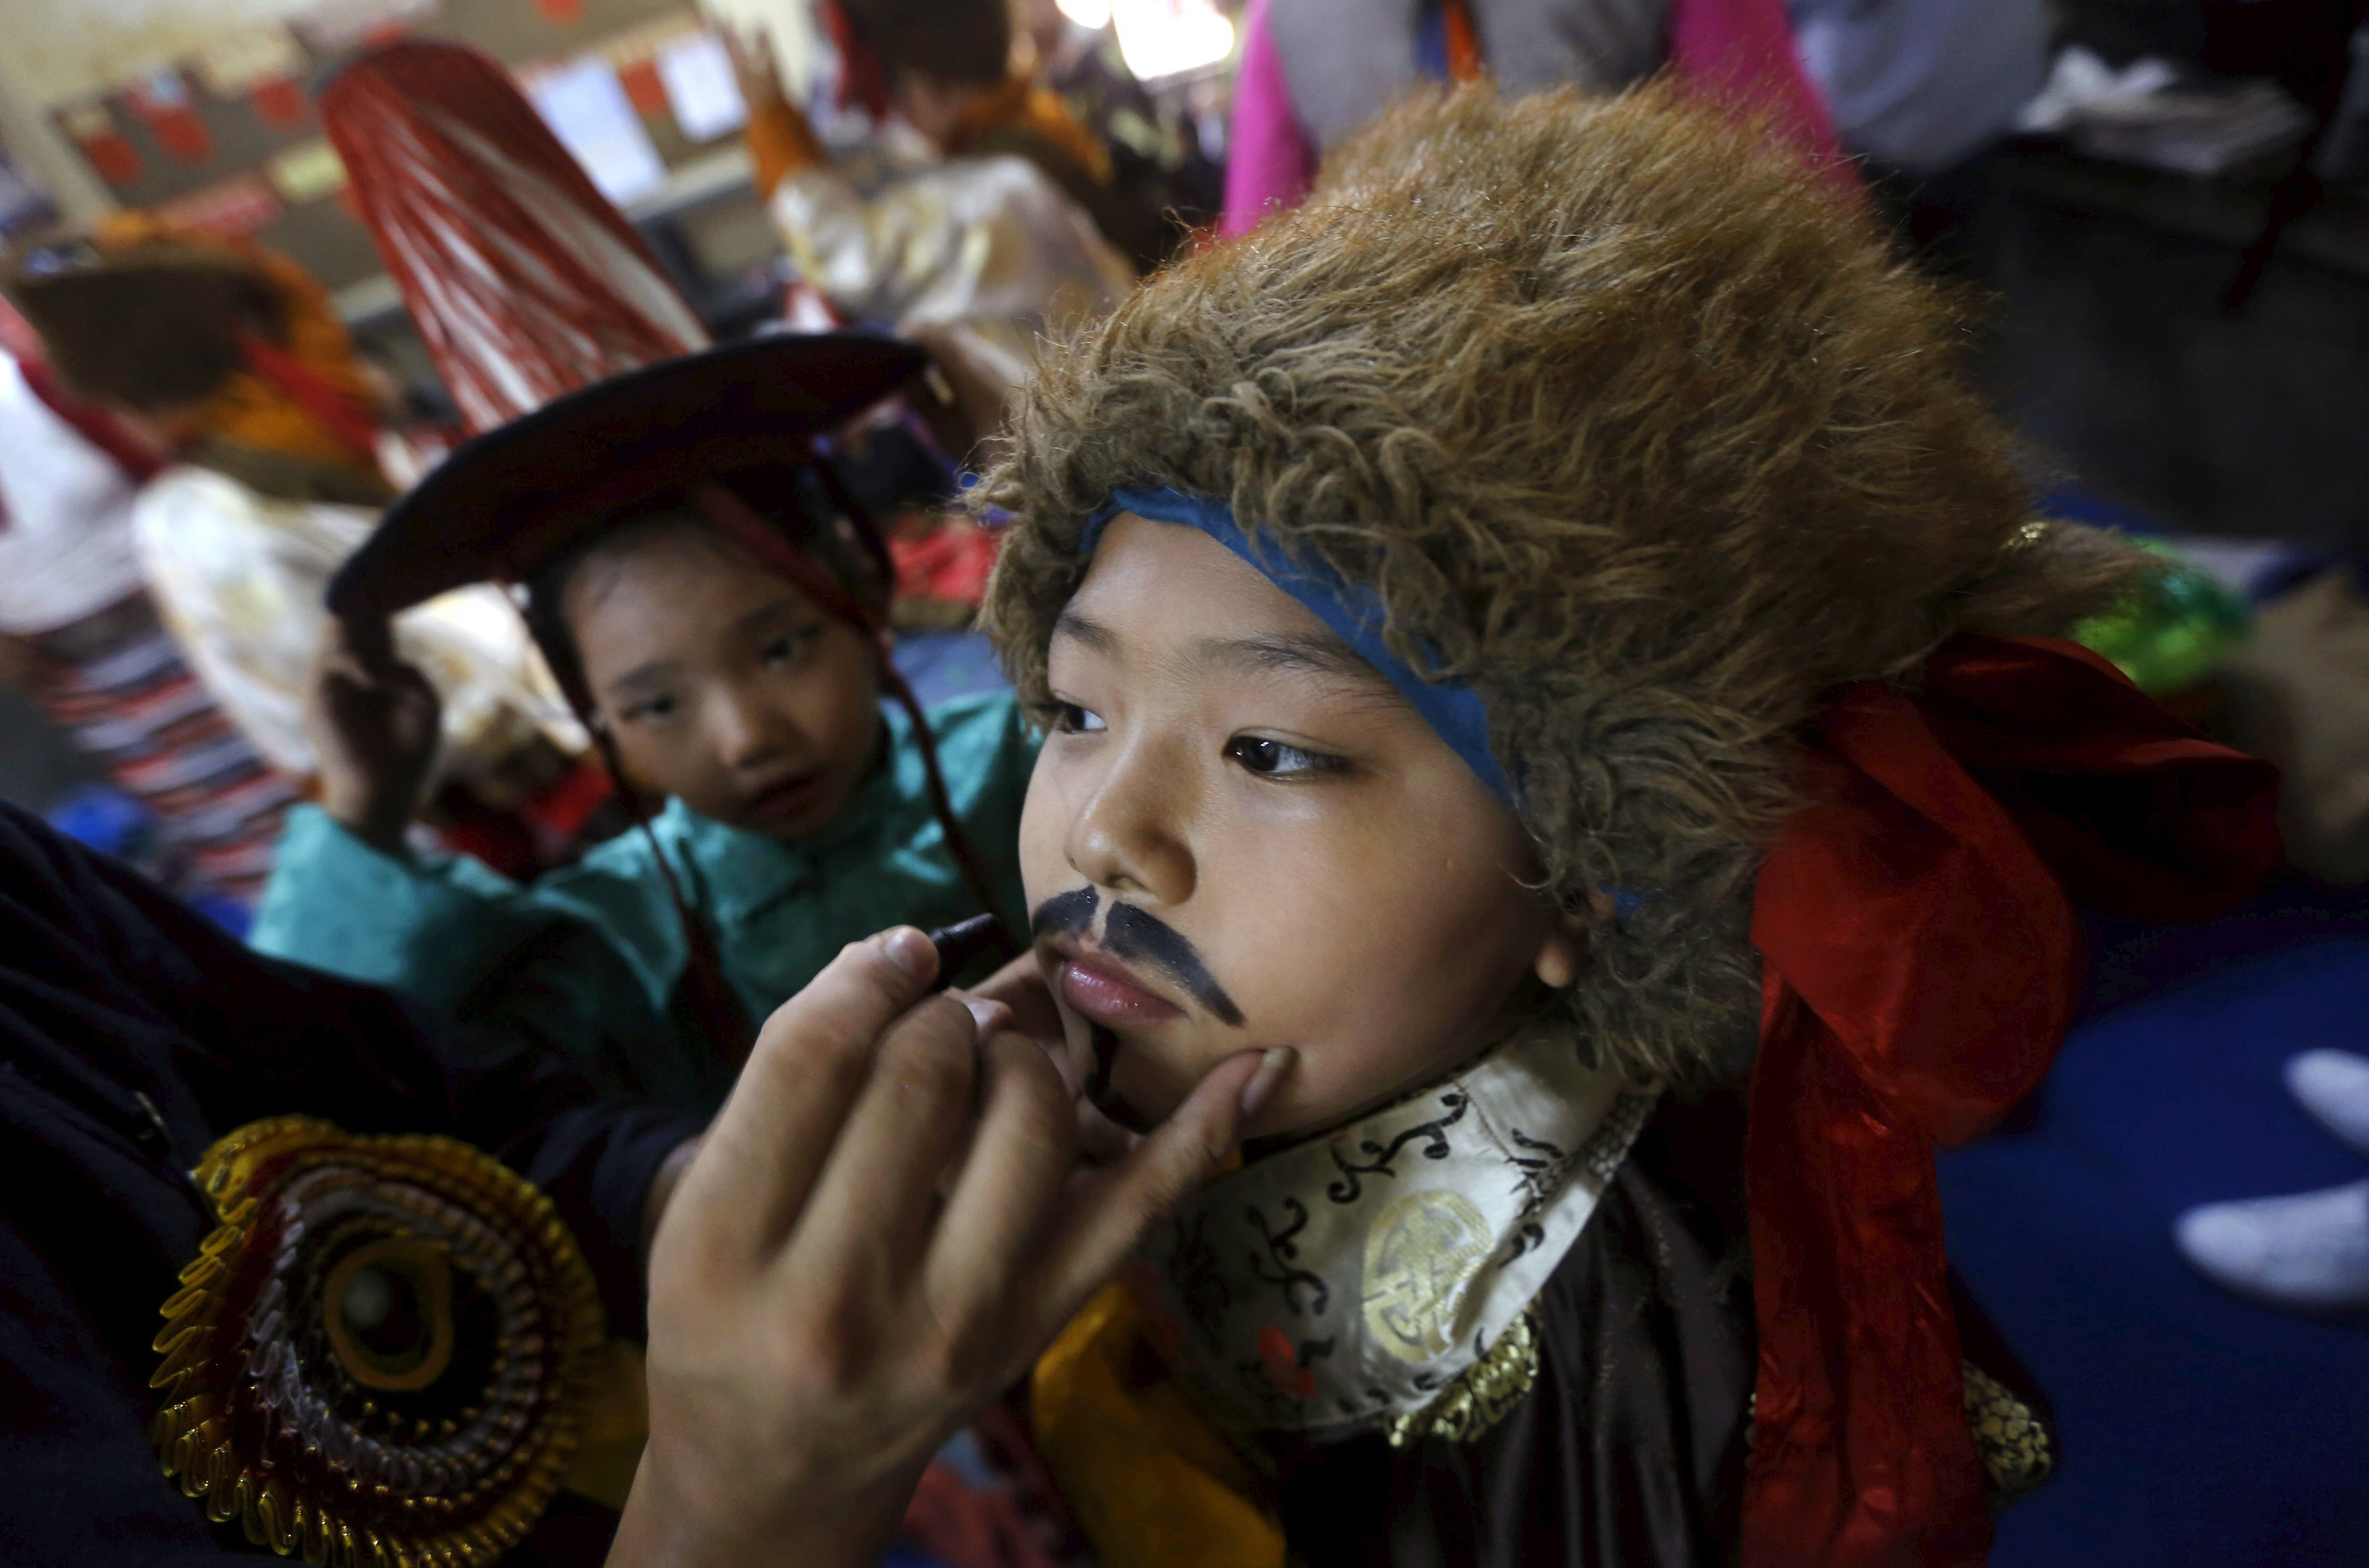 A young Tibetan exile has make-up applied on his face as he gets ready to perform for the Dalai Lama's 80th birthday, at Majnu Ka Tila, a Tibetan refugee camp in New Delhi, India on July 6, 2015.